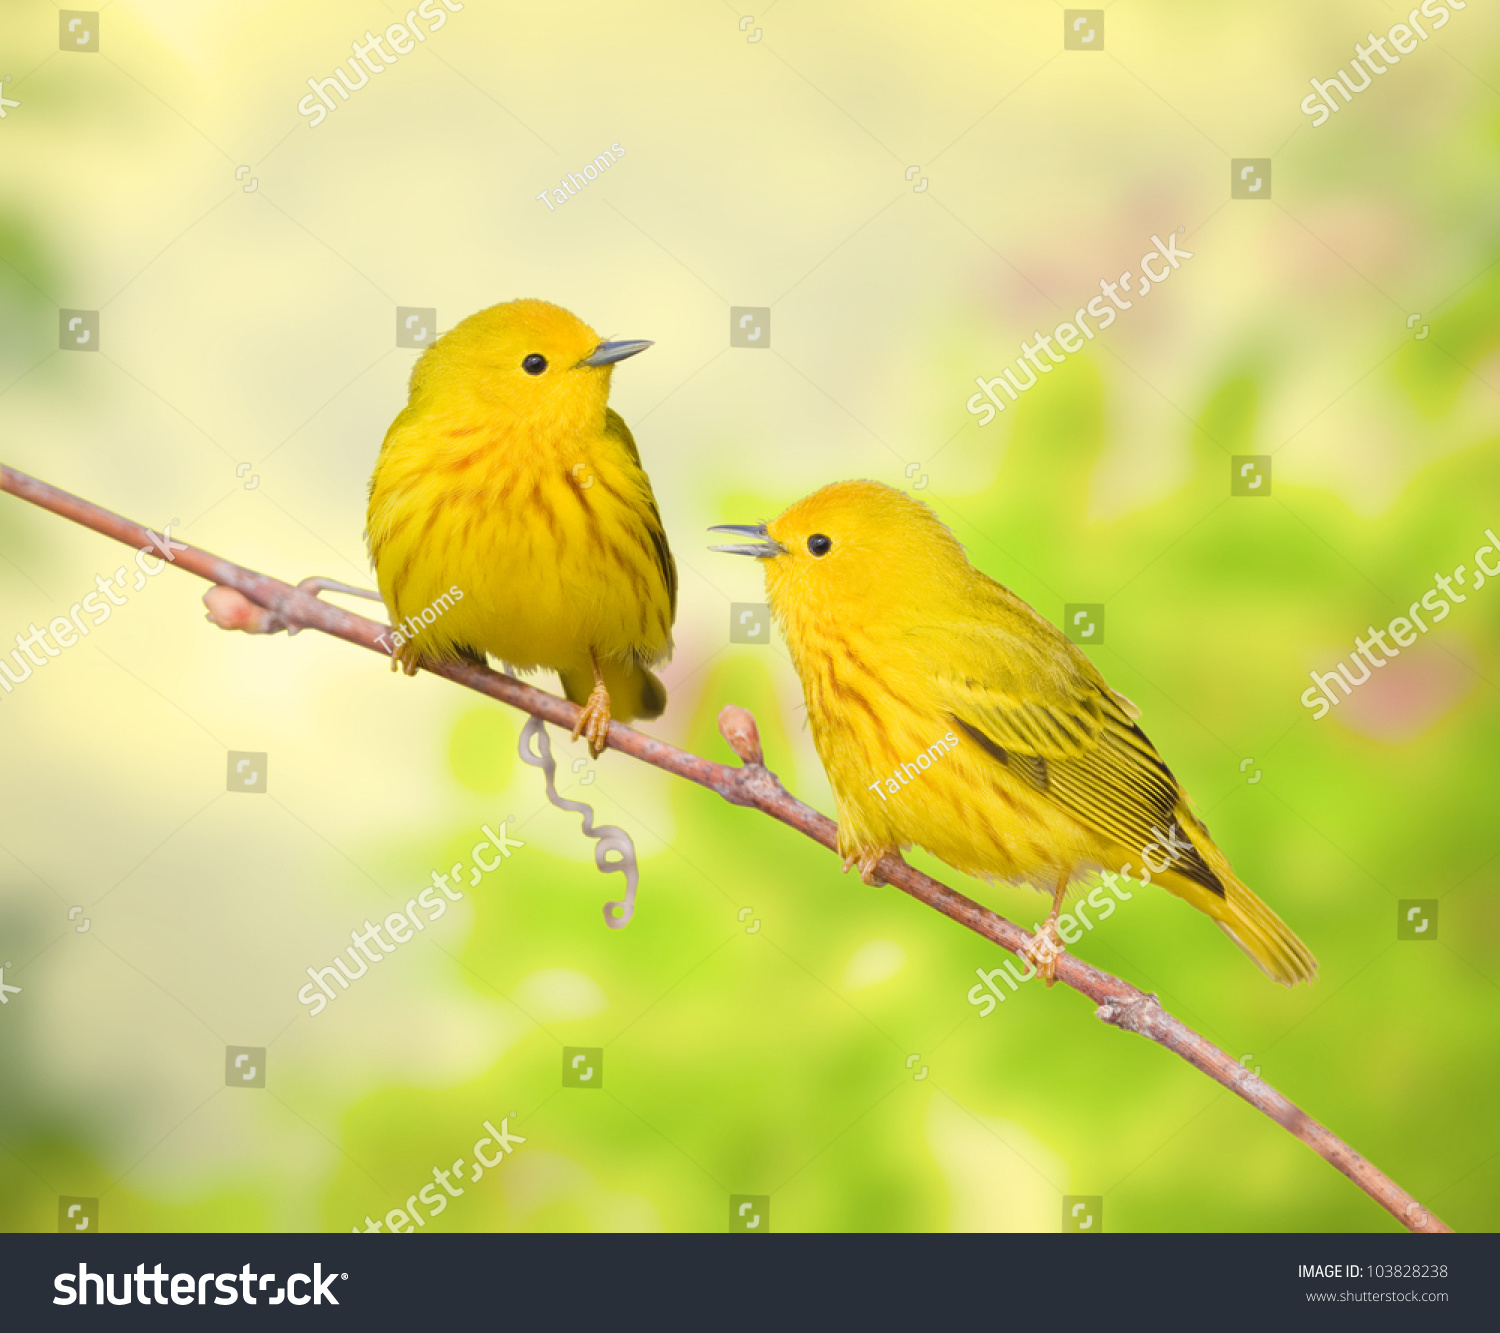 stock-photo-yellow-warblers-perching-on-